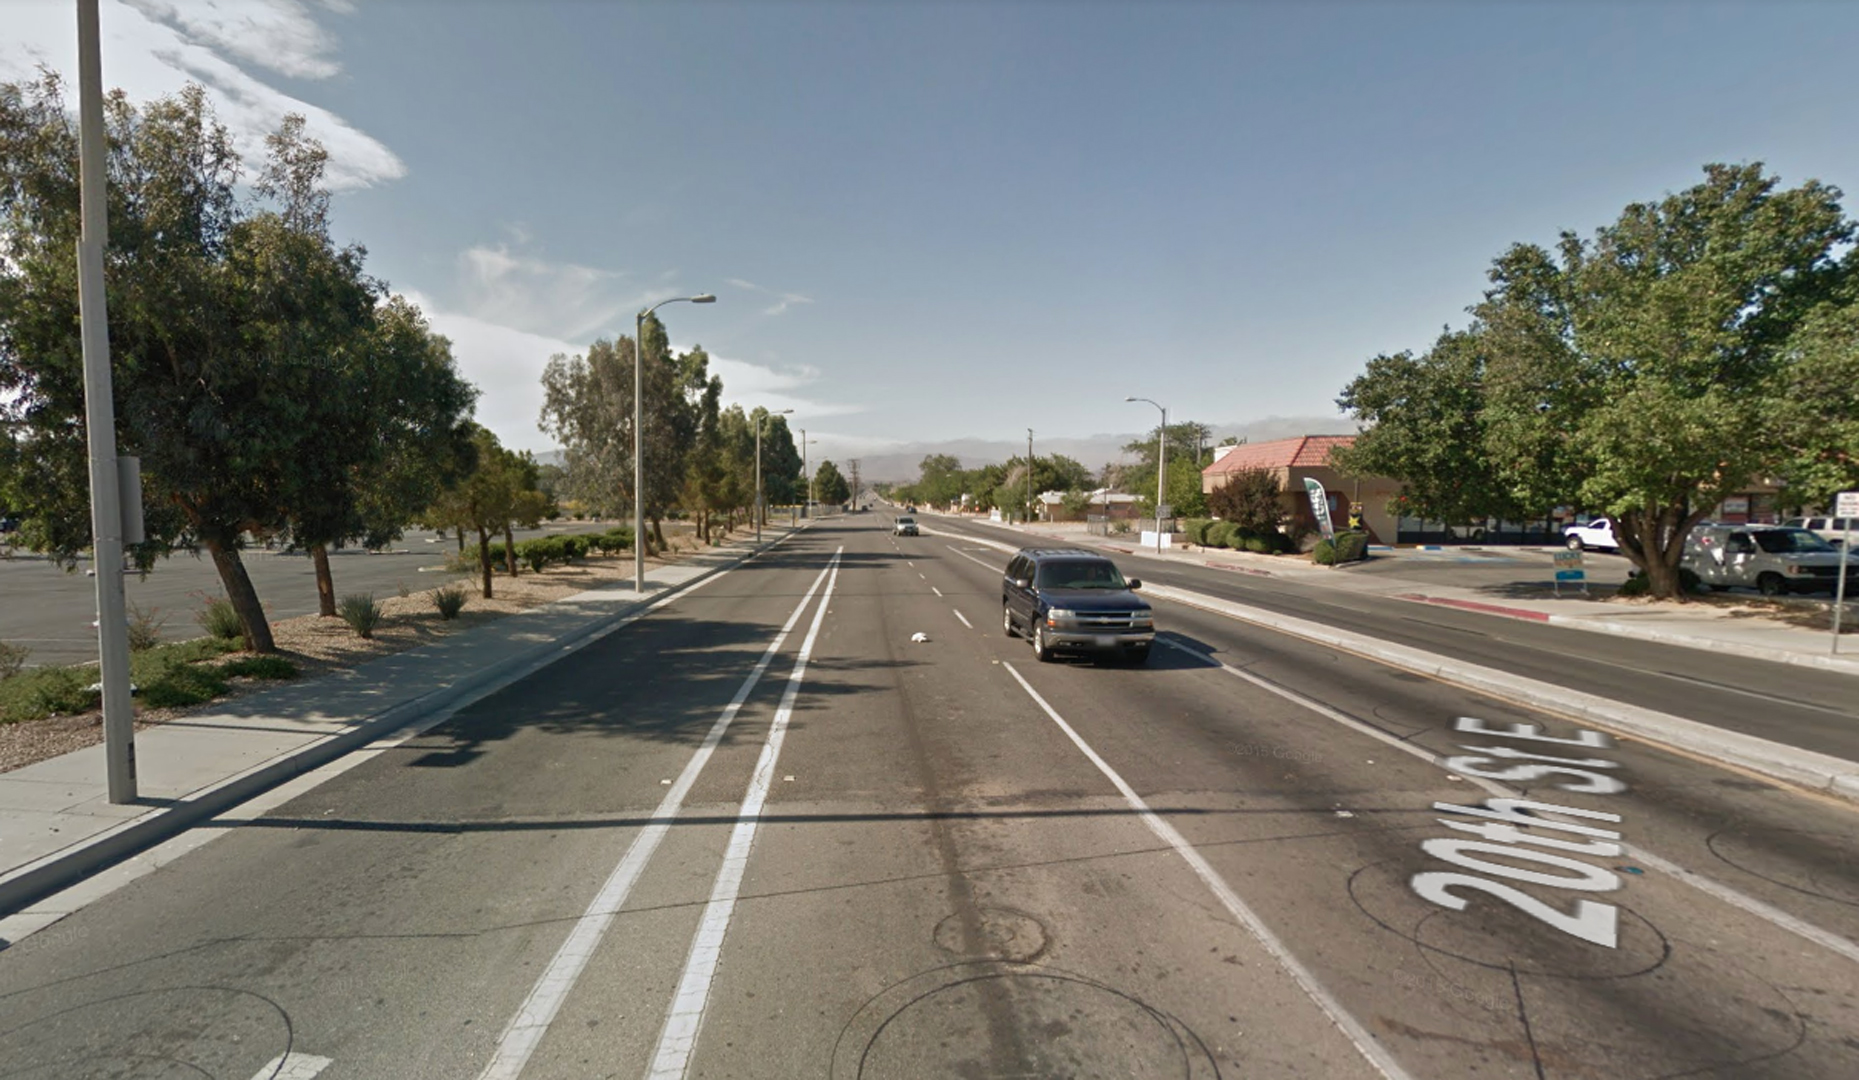 The 3800 block of 20th Street East in Palmdale is shown in a Street View image from Google Maps.